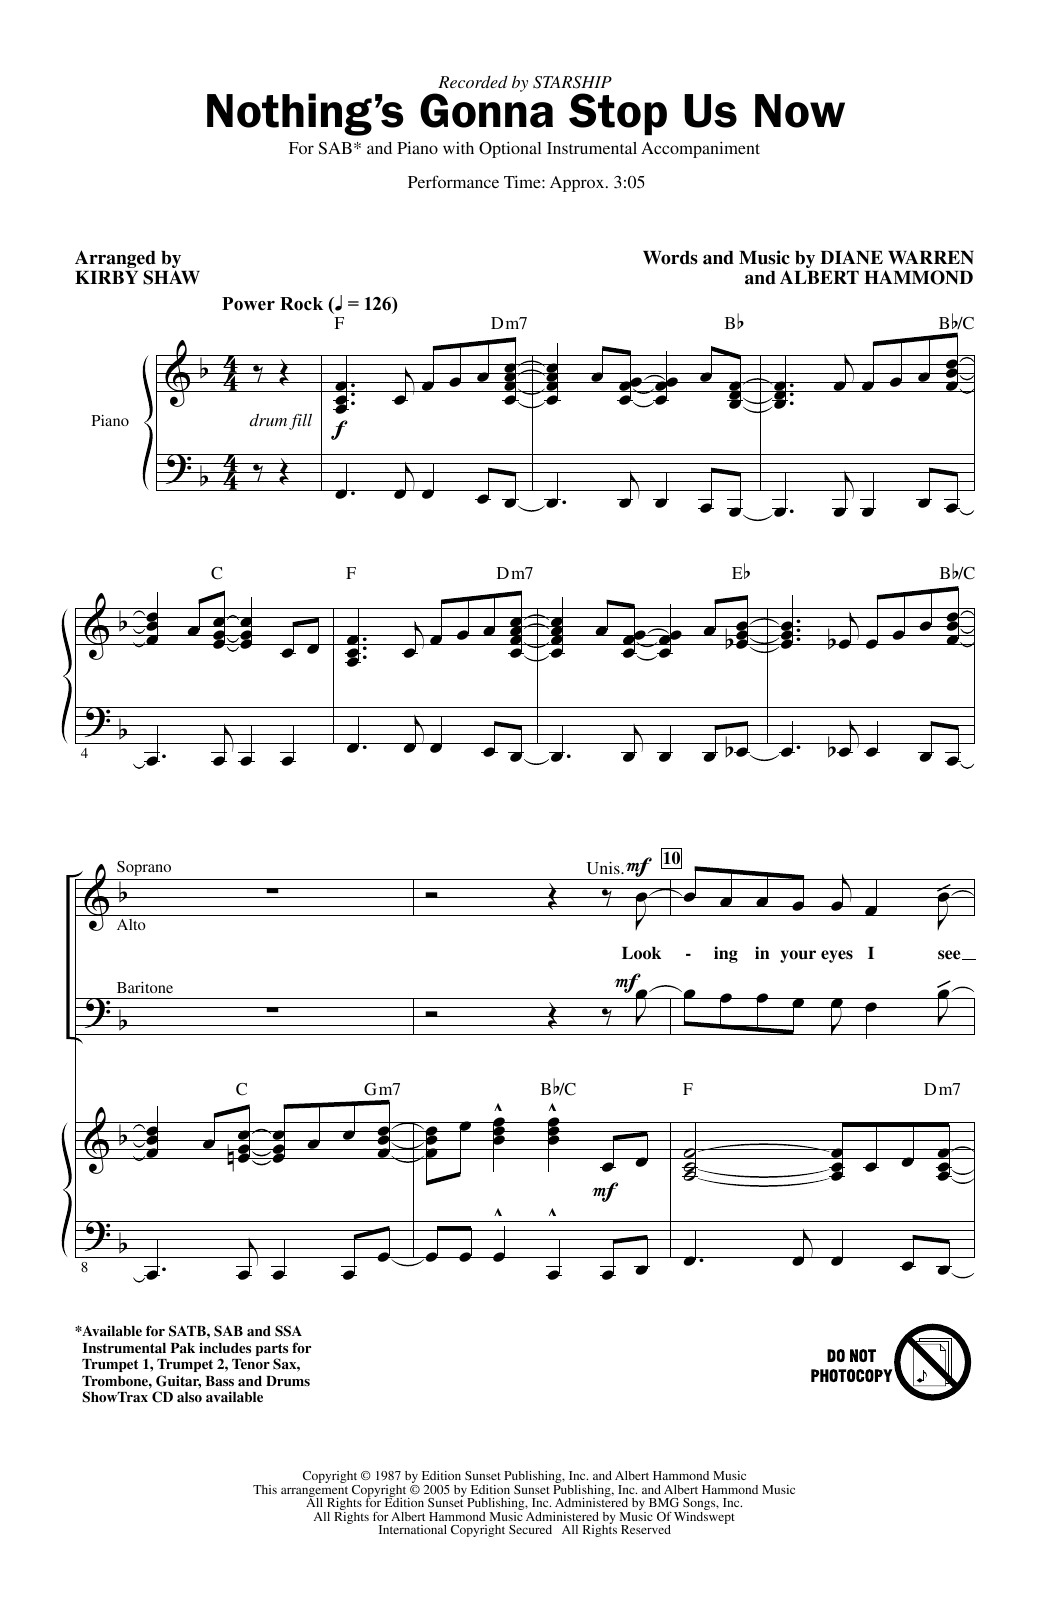 Starship Nothing's Gonna Stop Us Now arr. Kirby Shaw Sheet Music Notes,  Chords   Download Printable SATB Choir PDF Score   SKU 15